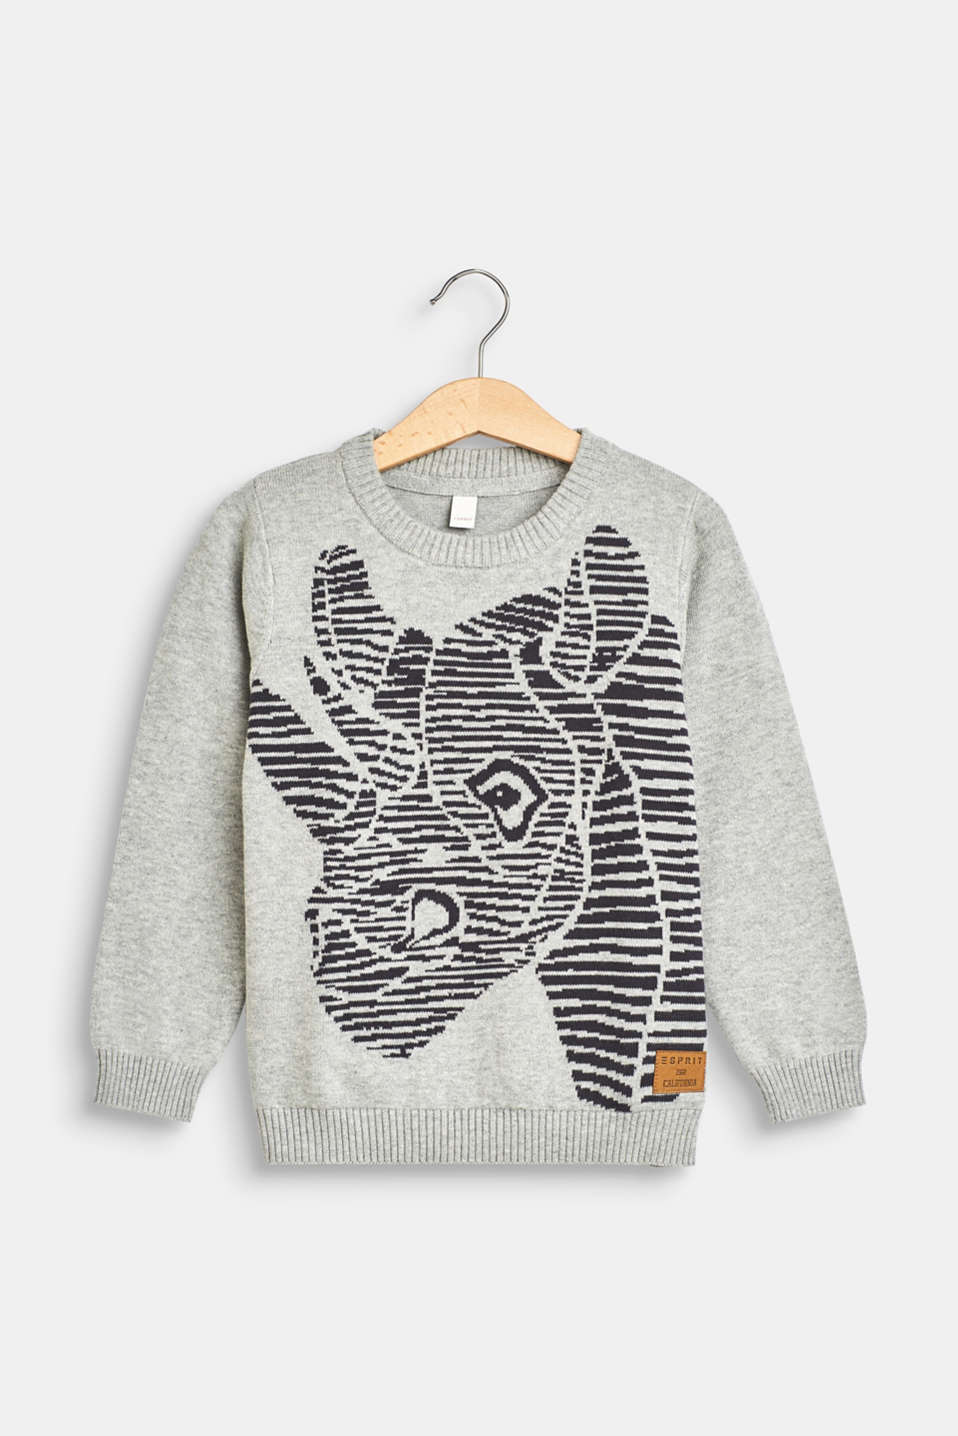 Esprit - Knitted jumper with a rhino pattern, 100% cotton